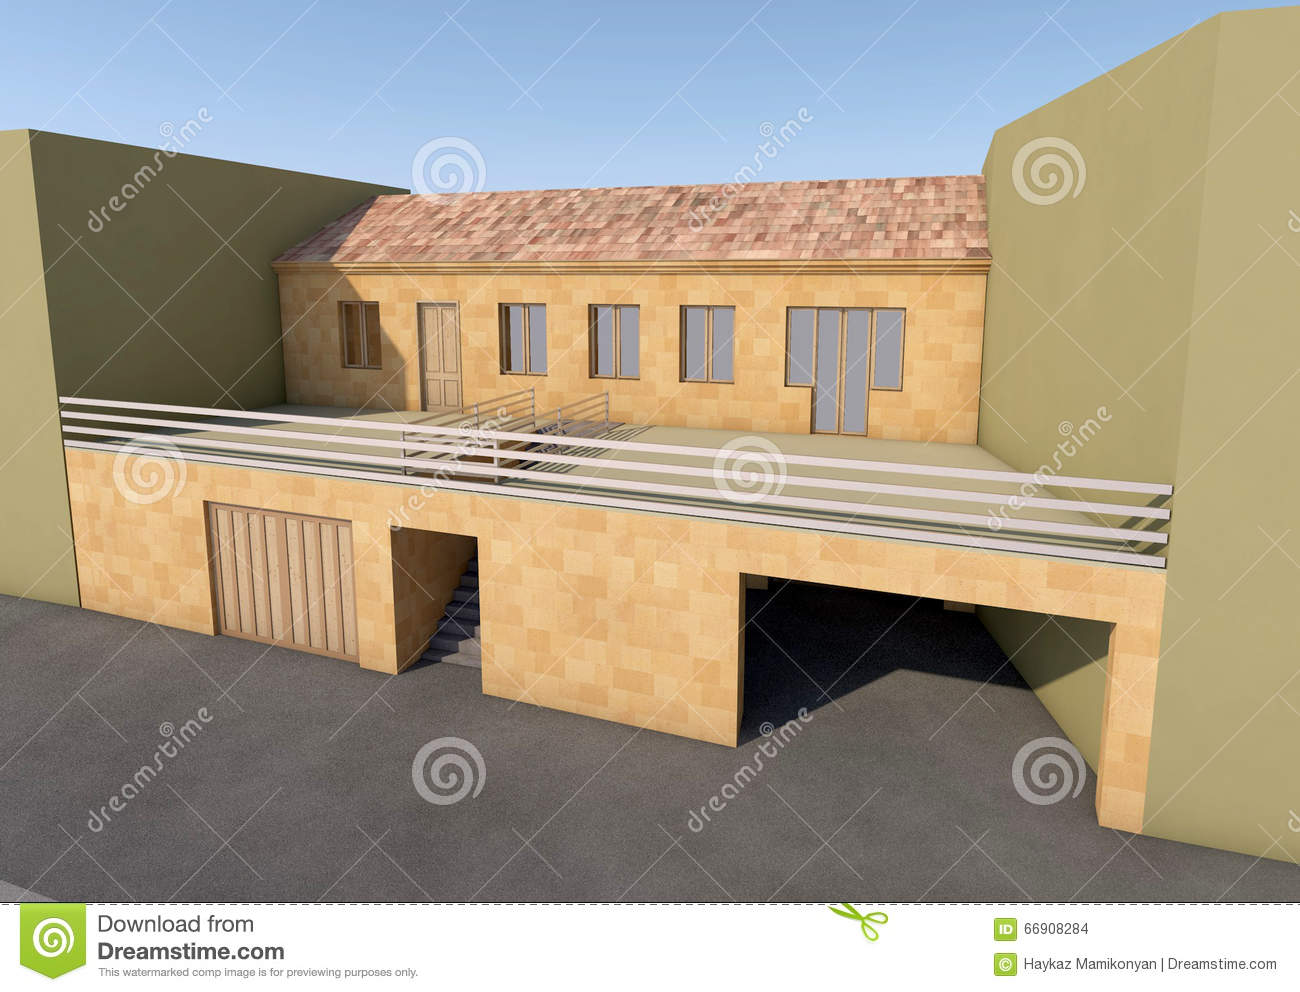 Residential house 3d stock illustration image 66908284 for Furniture drawing software